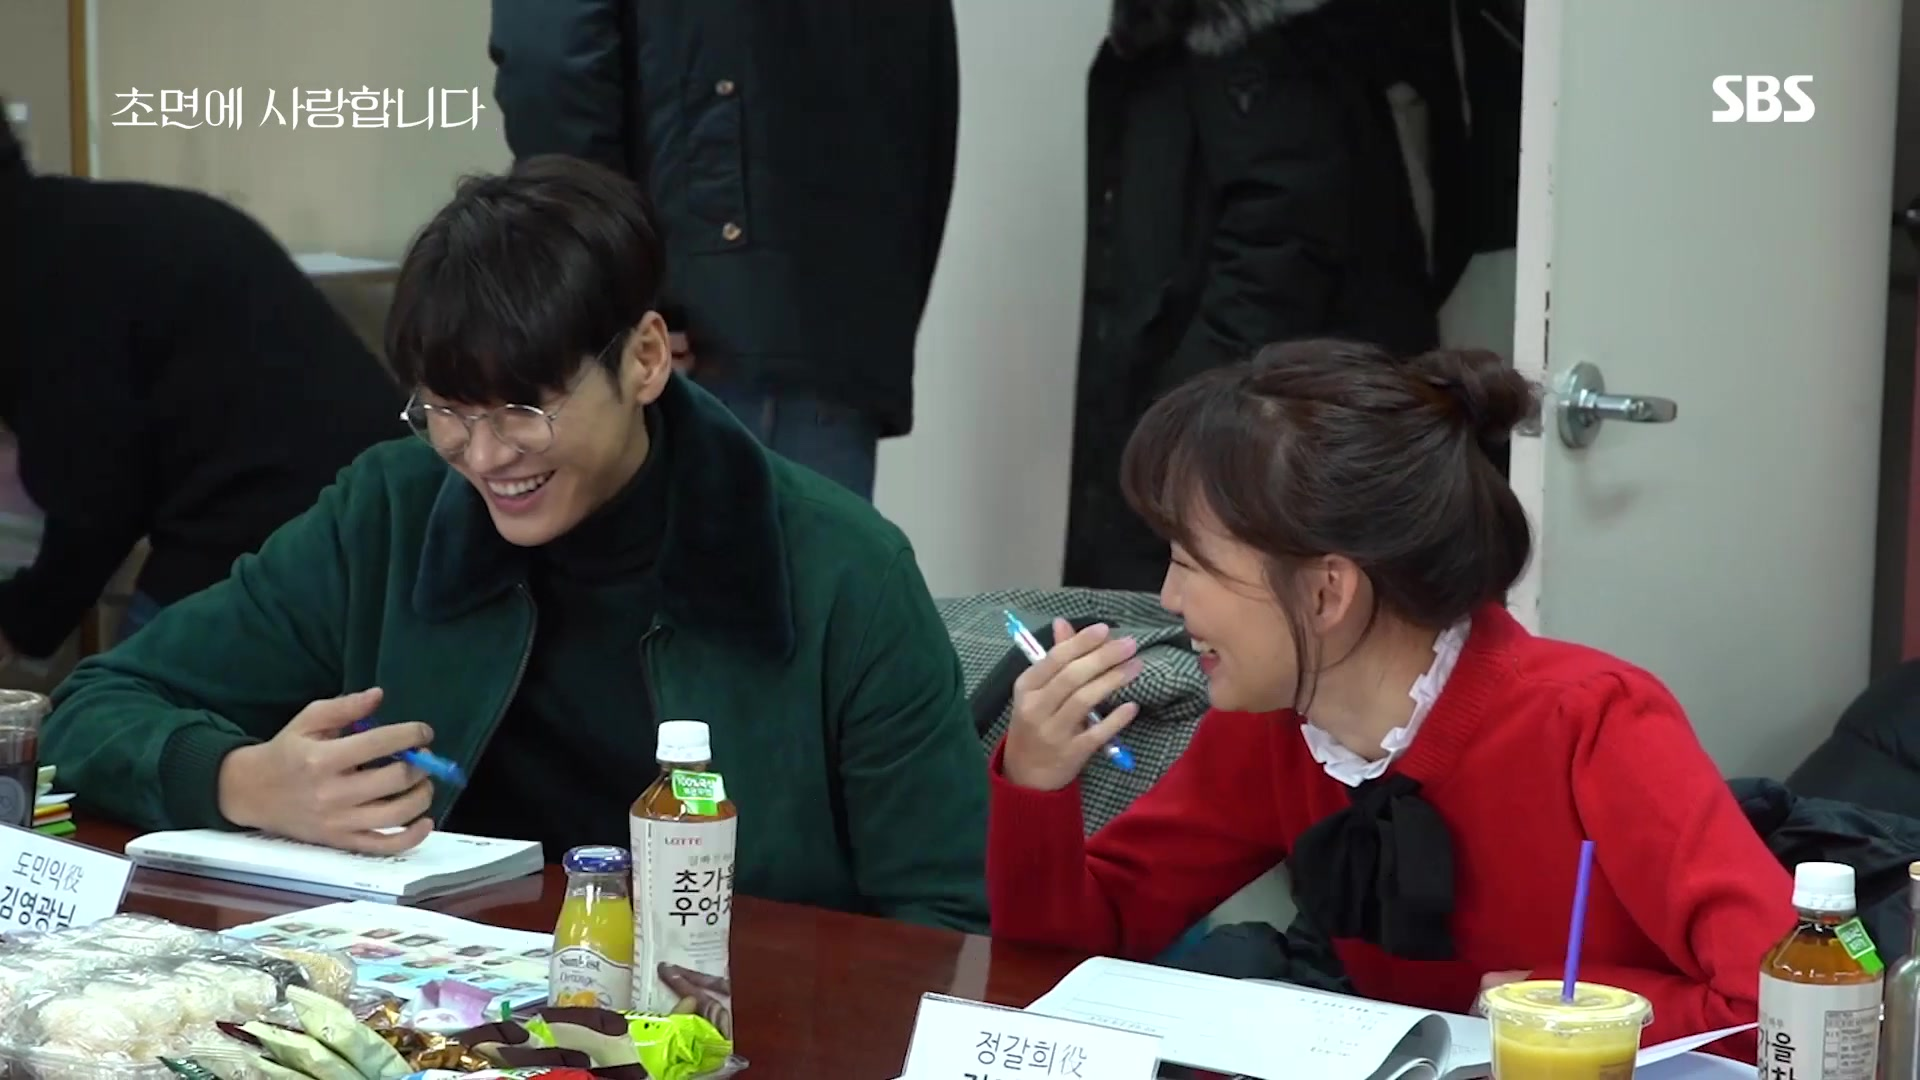 Making 4: Script Reading: The Secret Life of My Secretary